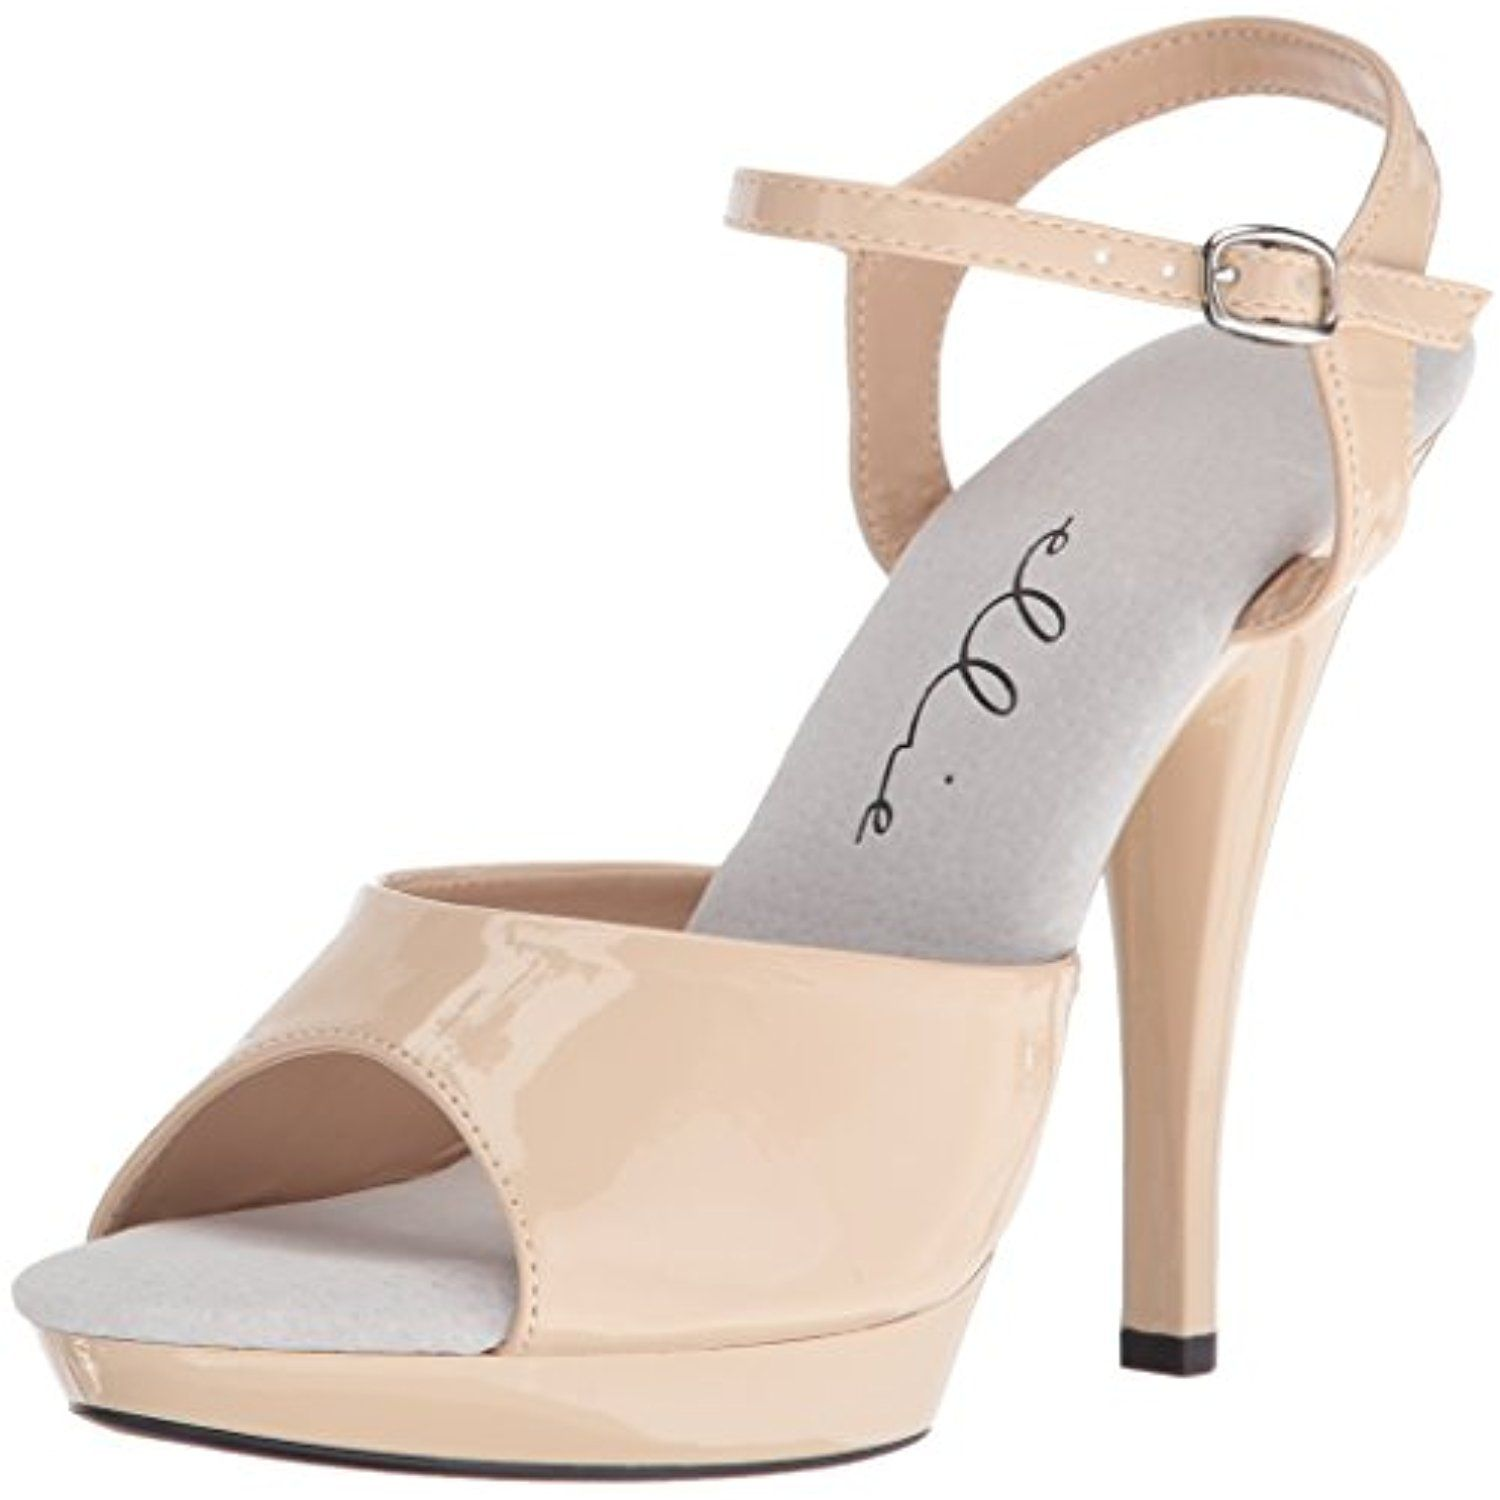 03dcc2a7987 Women s 521-Juliet-w Heeled Sandal   More info could be found at the ...